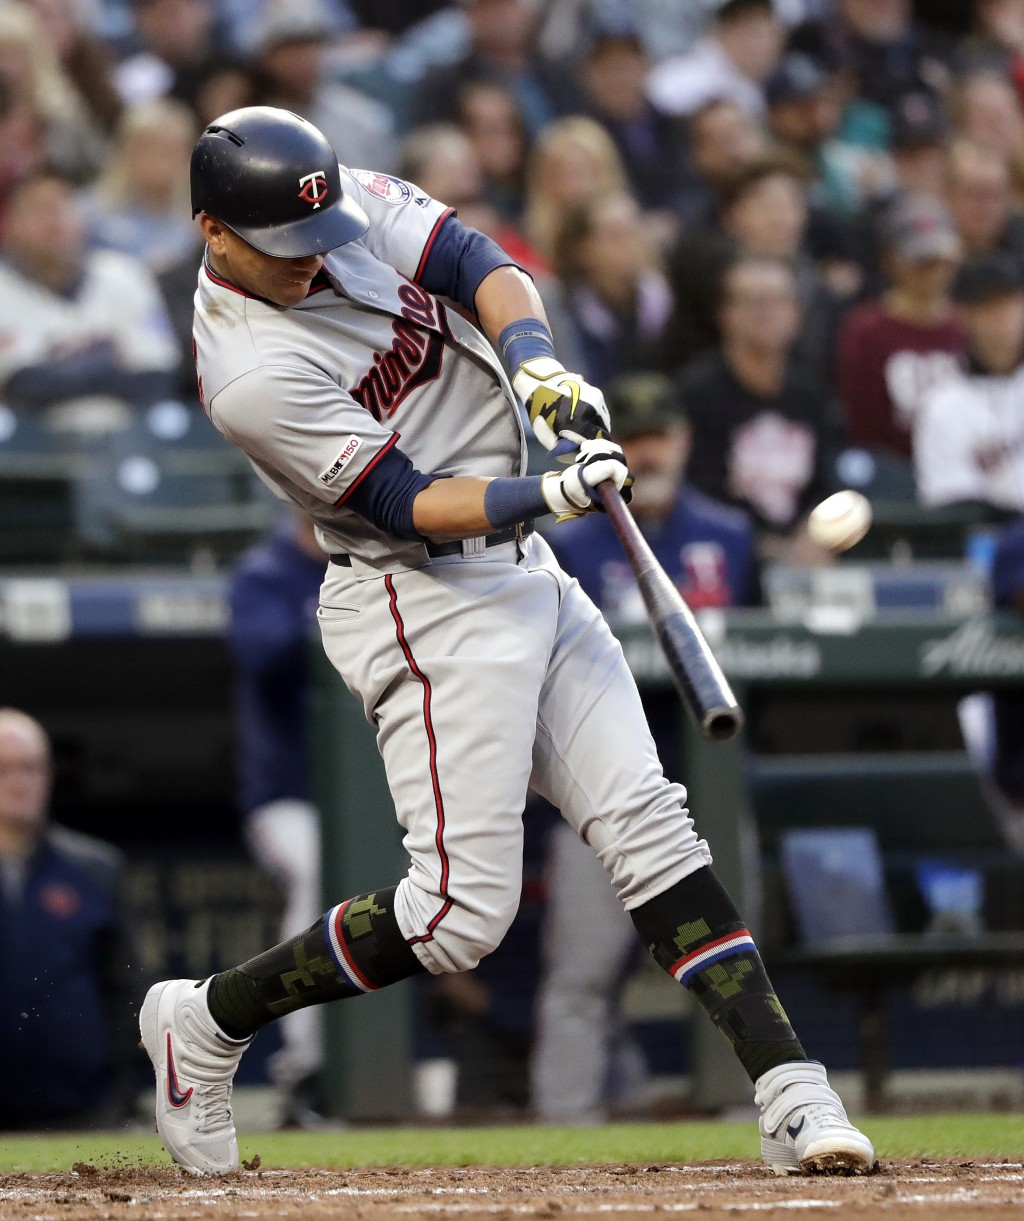 Minnesota Twins' Ehire Adrianza hits an RBI sacrifice fly against the Seattle Mariners during the fourth inning of a baseball game Friday, May 17, 201